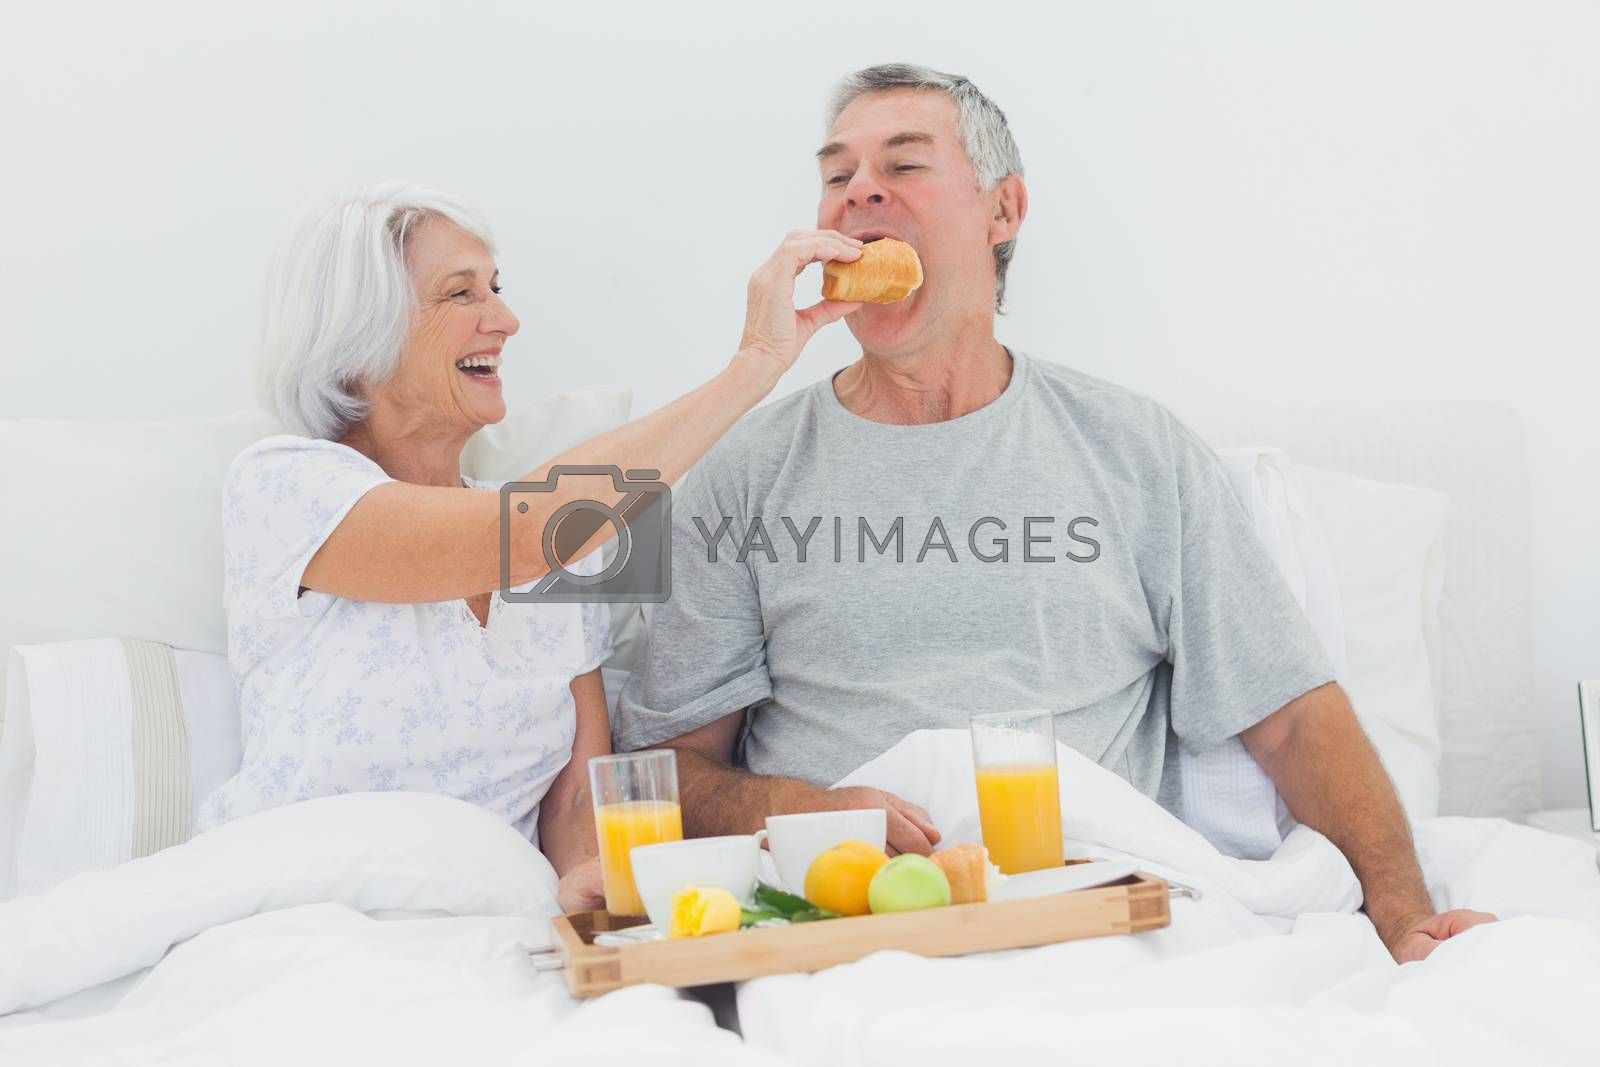 Woman giving husband a croissant while they are having breakfast in bed